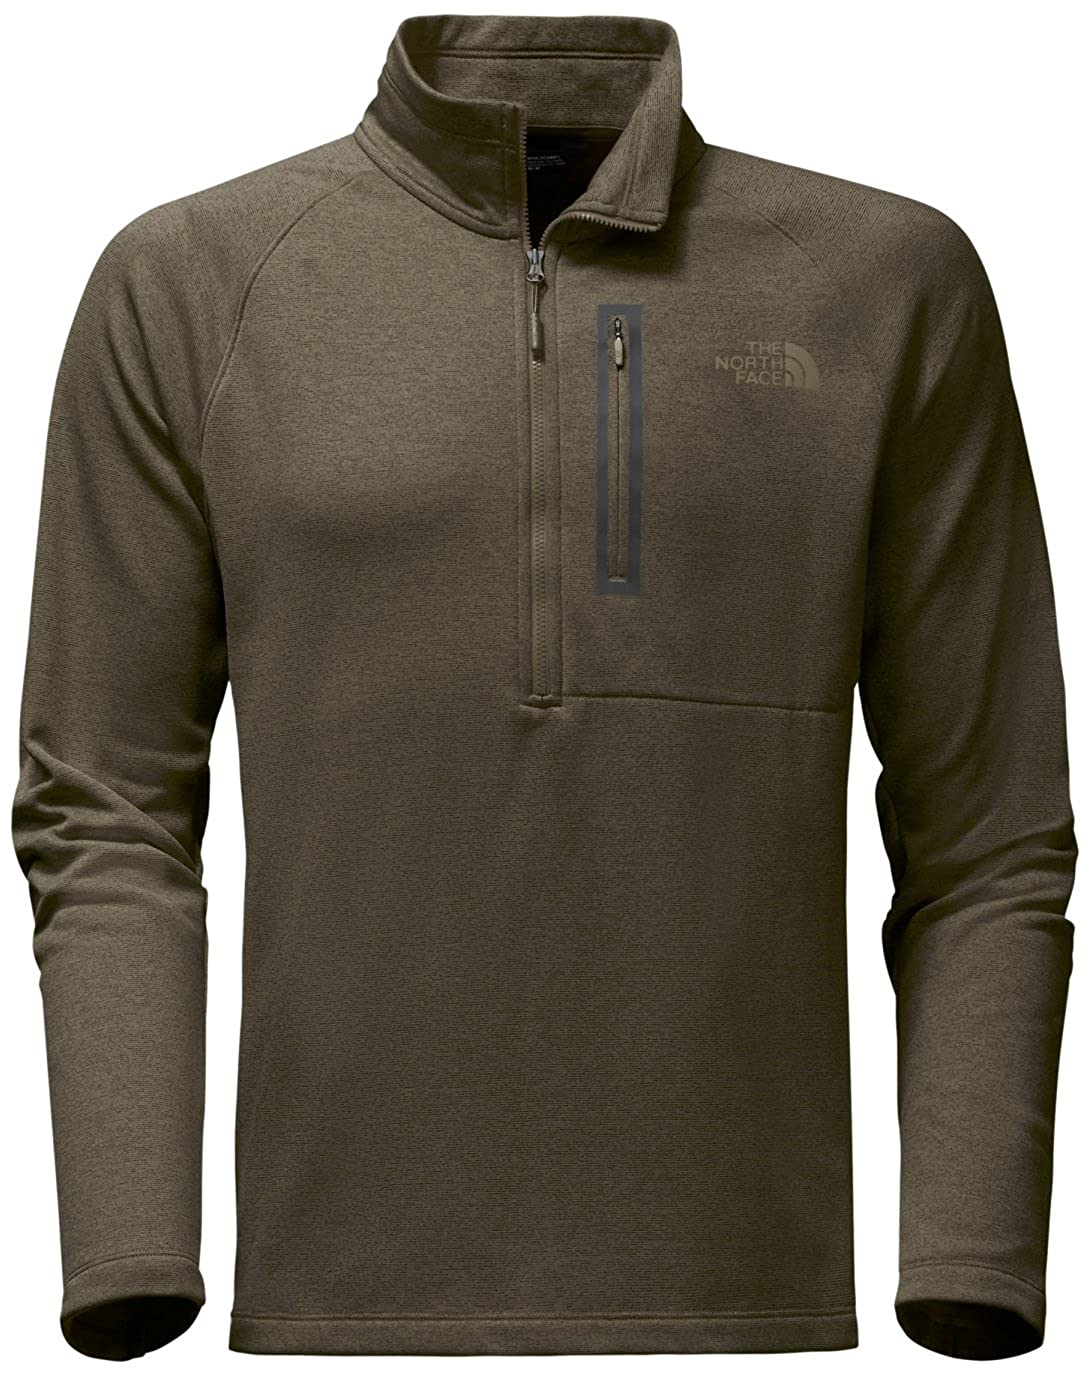 The North Face Men's Canyonlands 1/2 Zip A2VE5